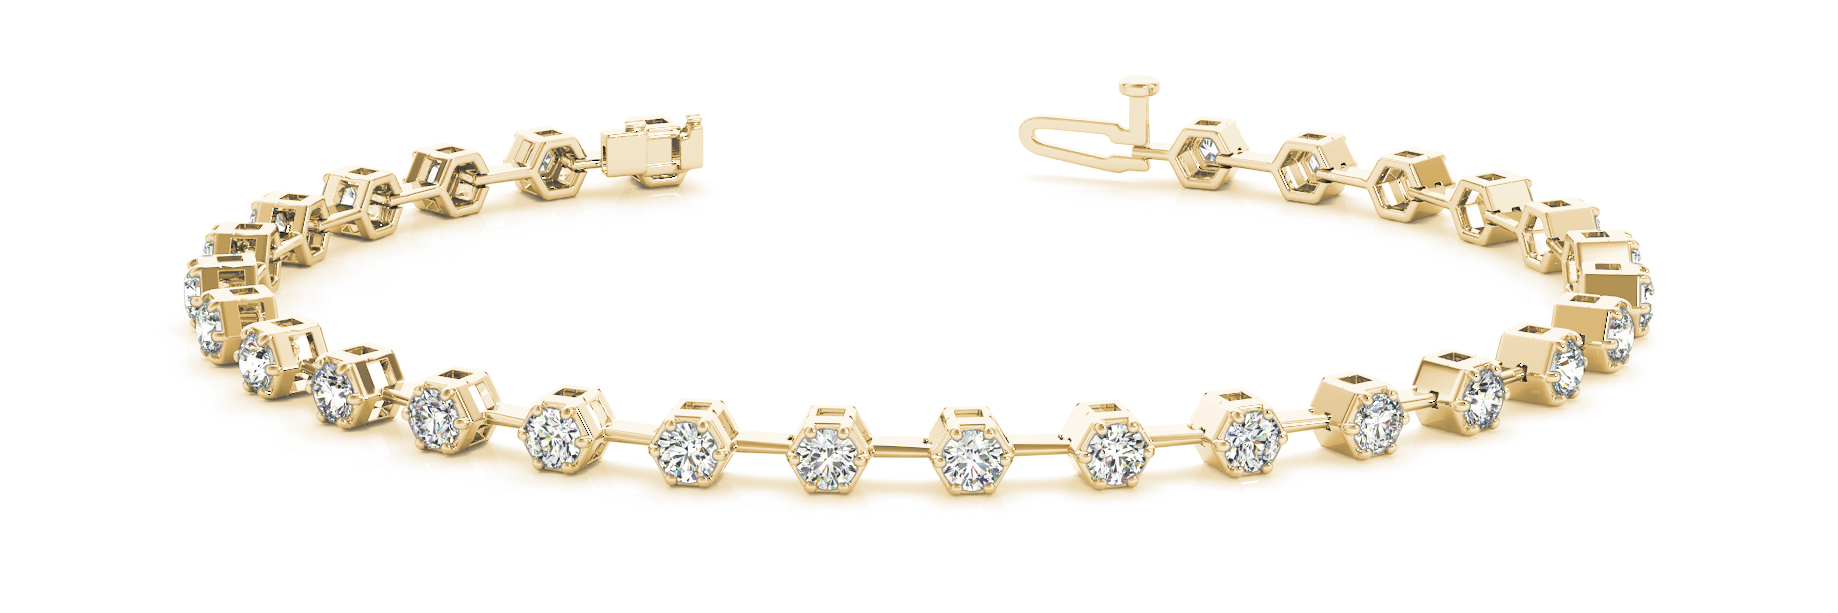 2.52 Carat Round Diamond Hexagon Yellow Gold Bracelet